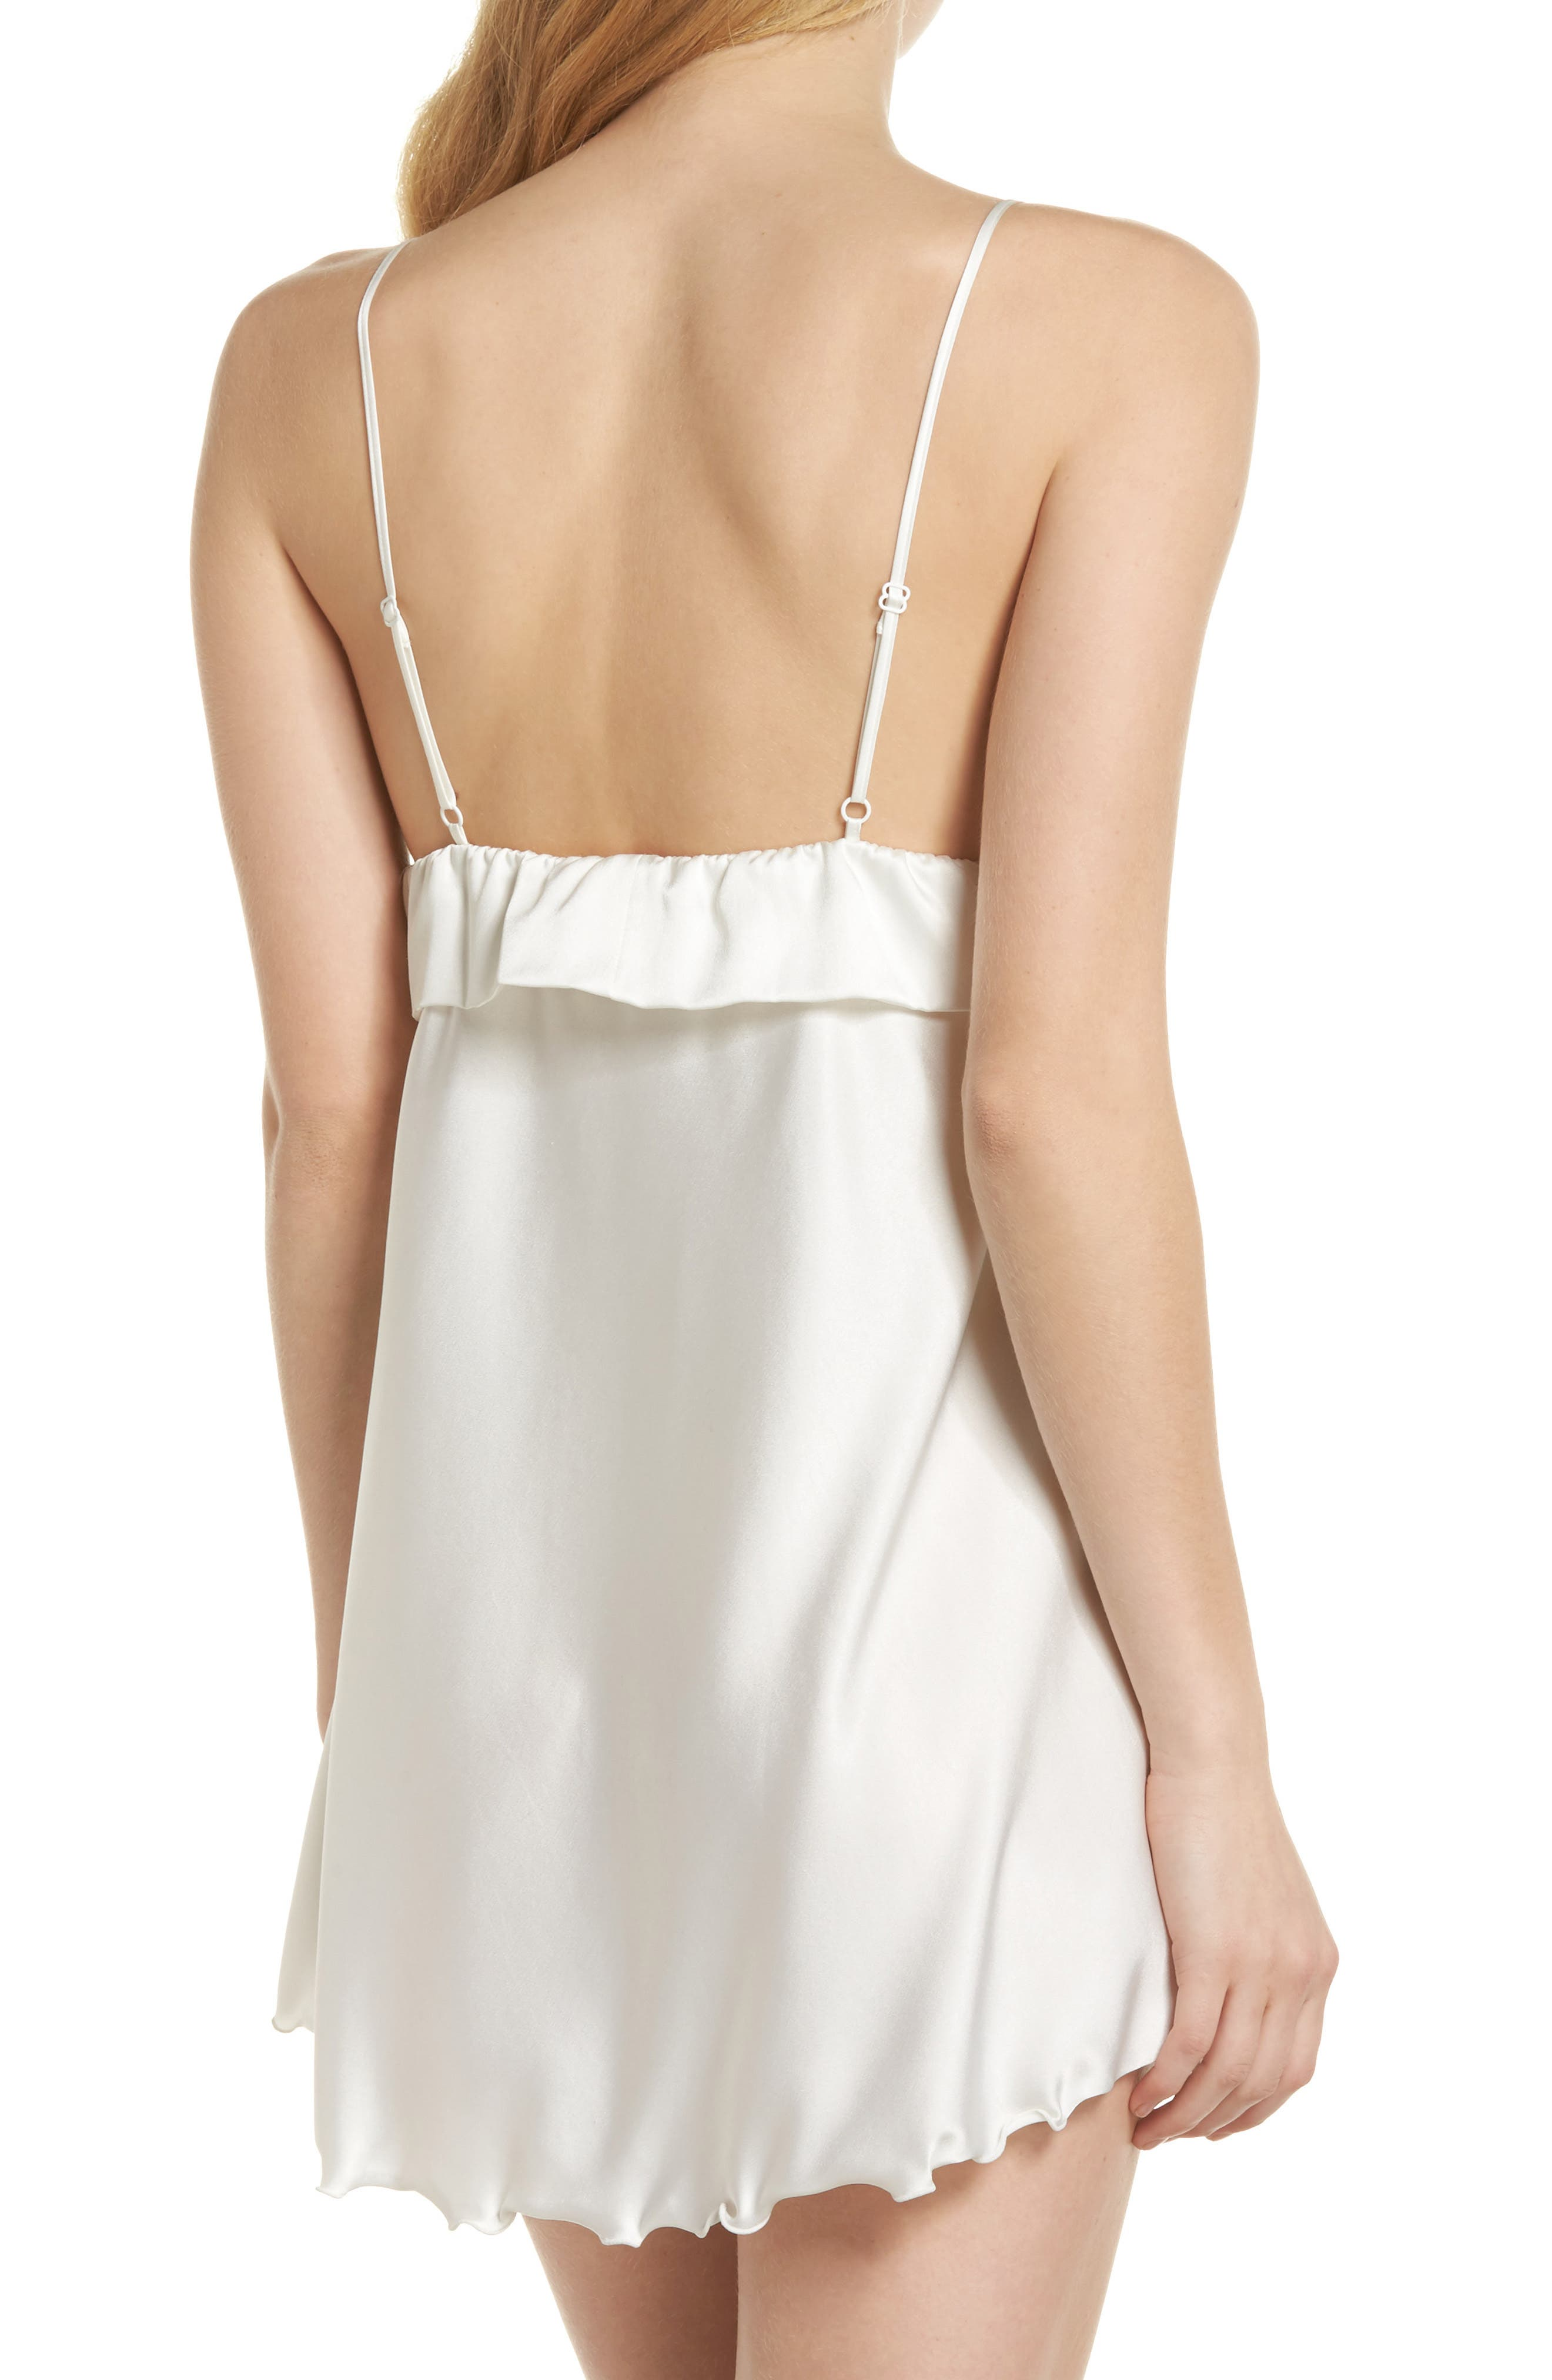 Alternate Image 2  - Samantha Chang Tie Front Babydoll Chemise